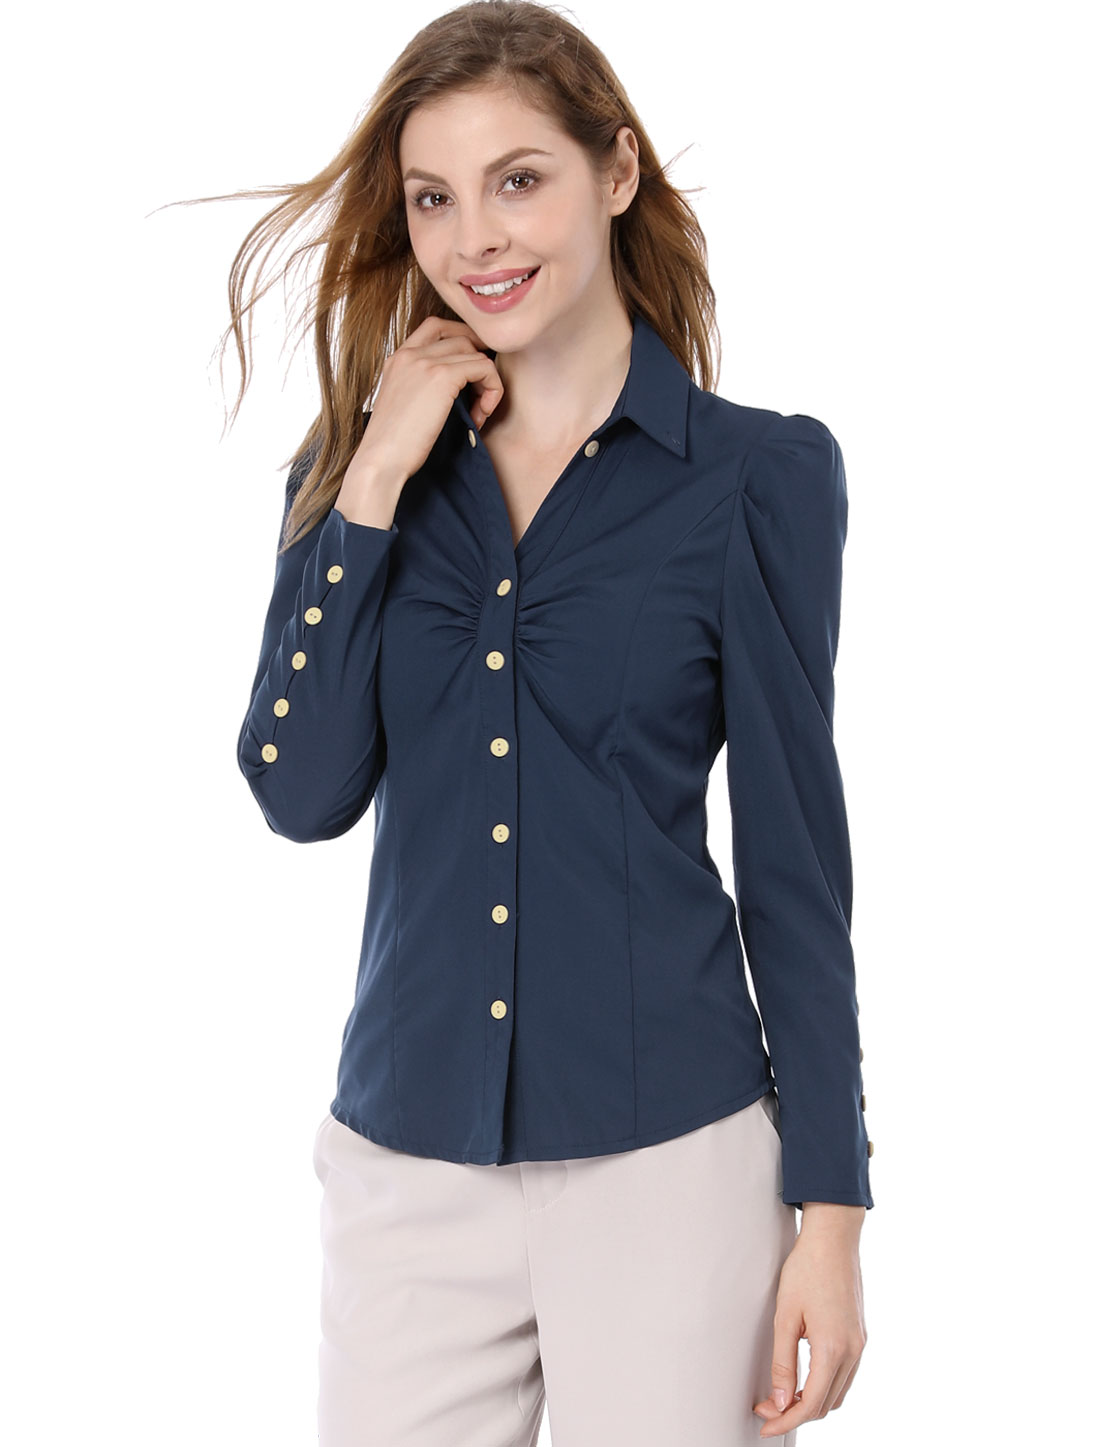 Women Point Collar Button Closure Casual Shirt Navy Blue XS